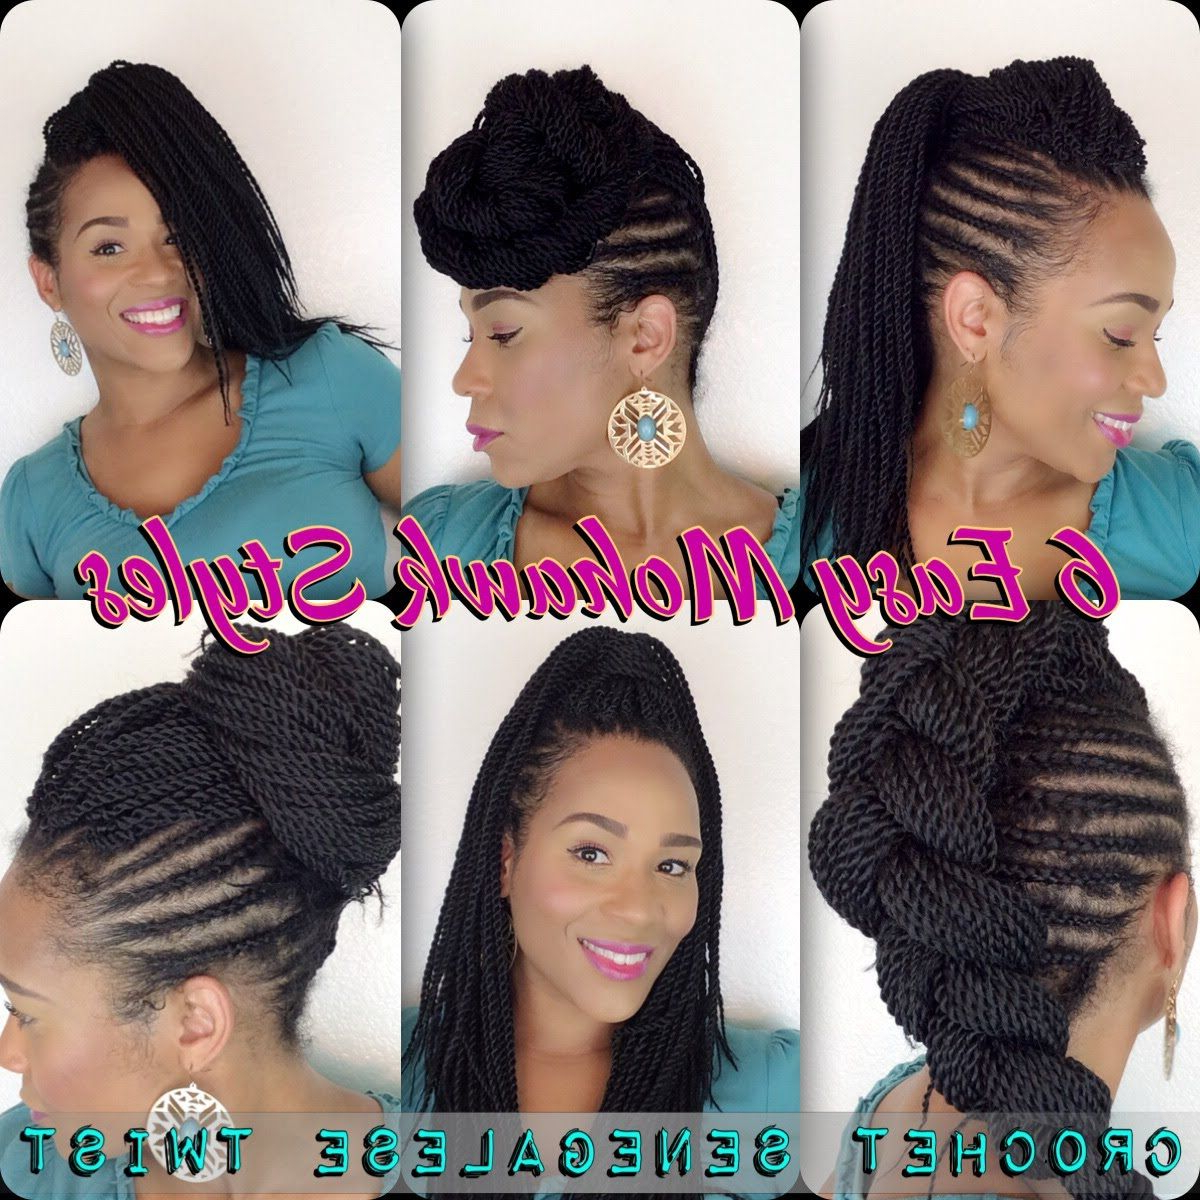 Trendy Fully Braided Mohawk Hairstyles Inside 6 Easy Mohawk Styles – Senegalese Twist (View 19 of 20)